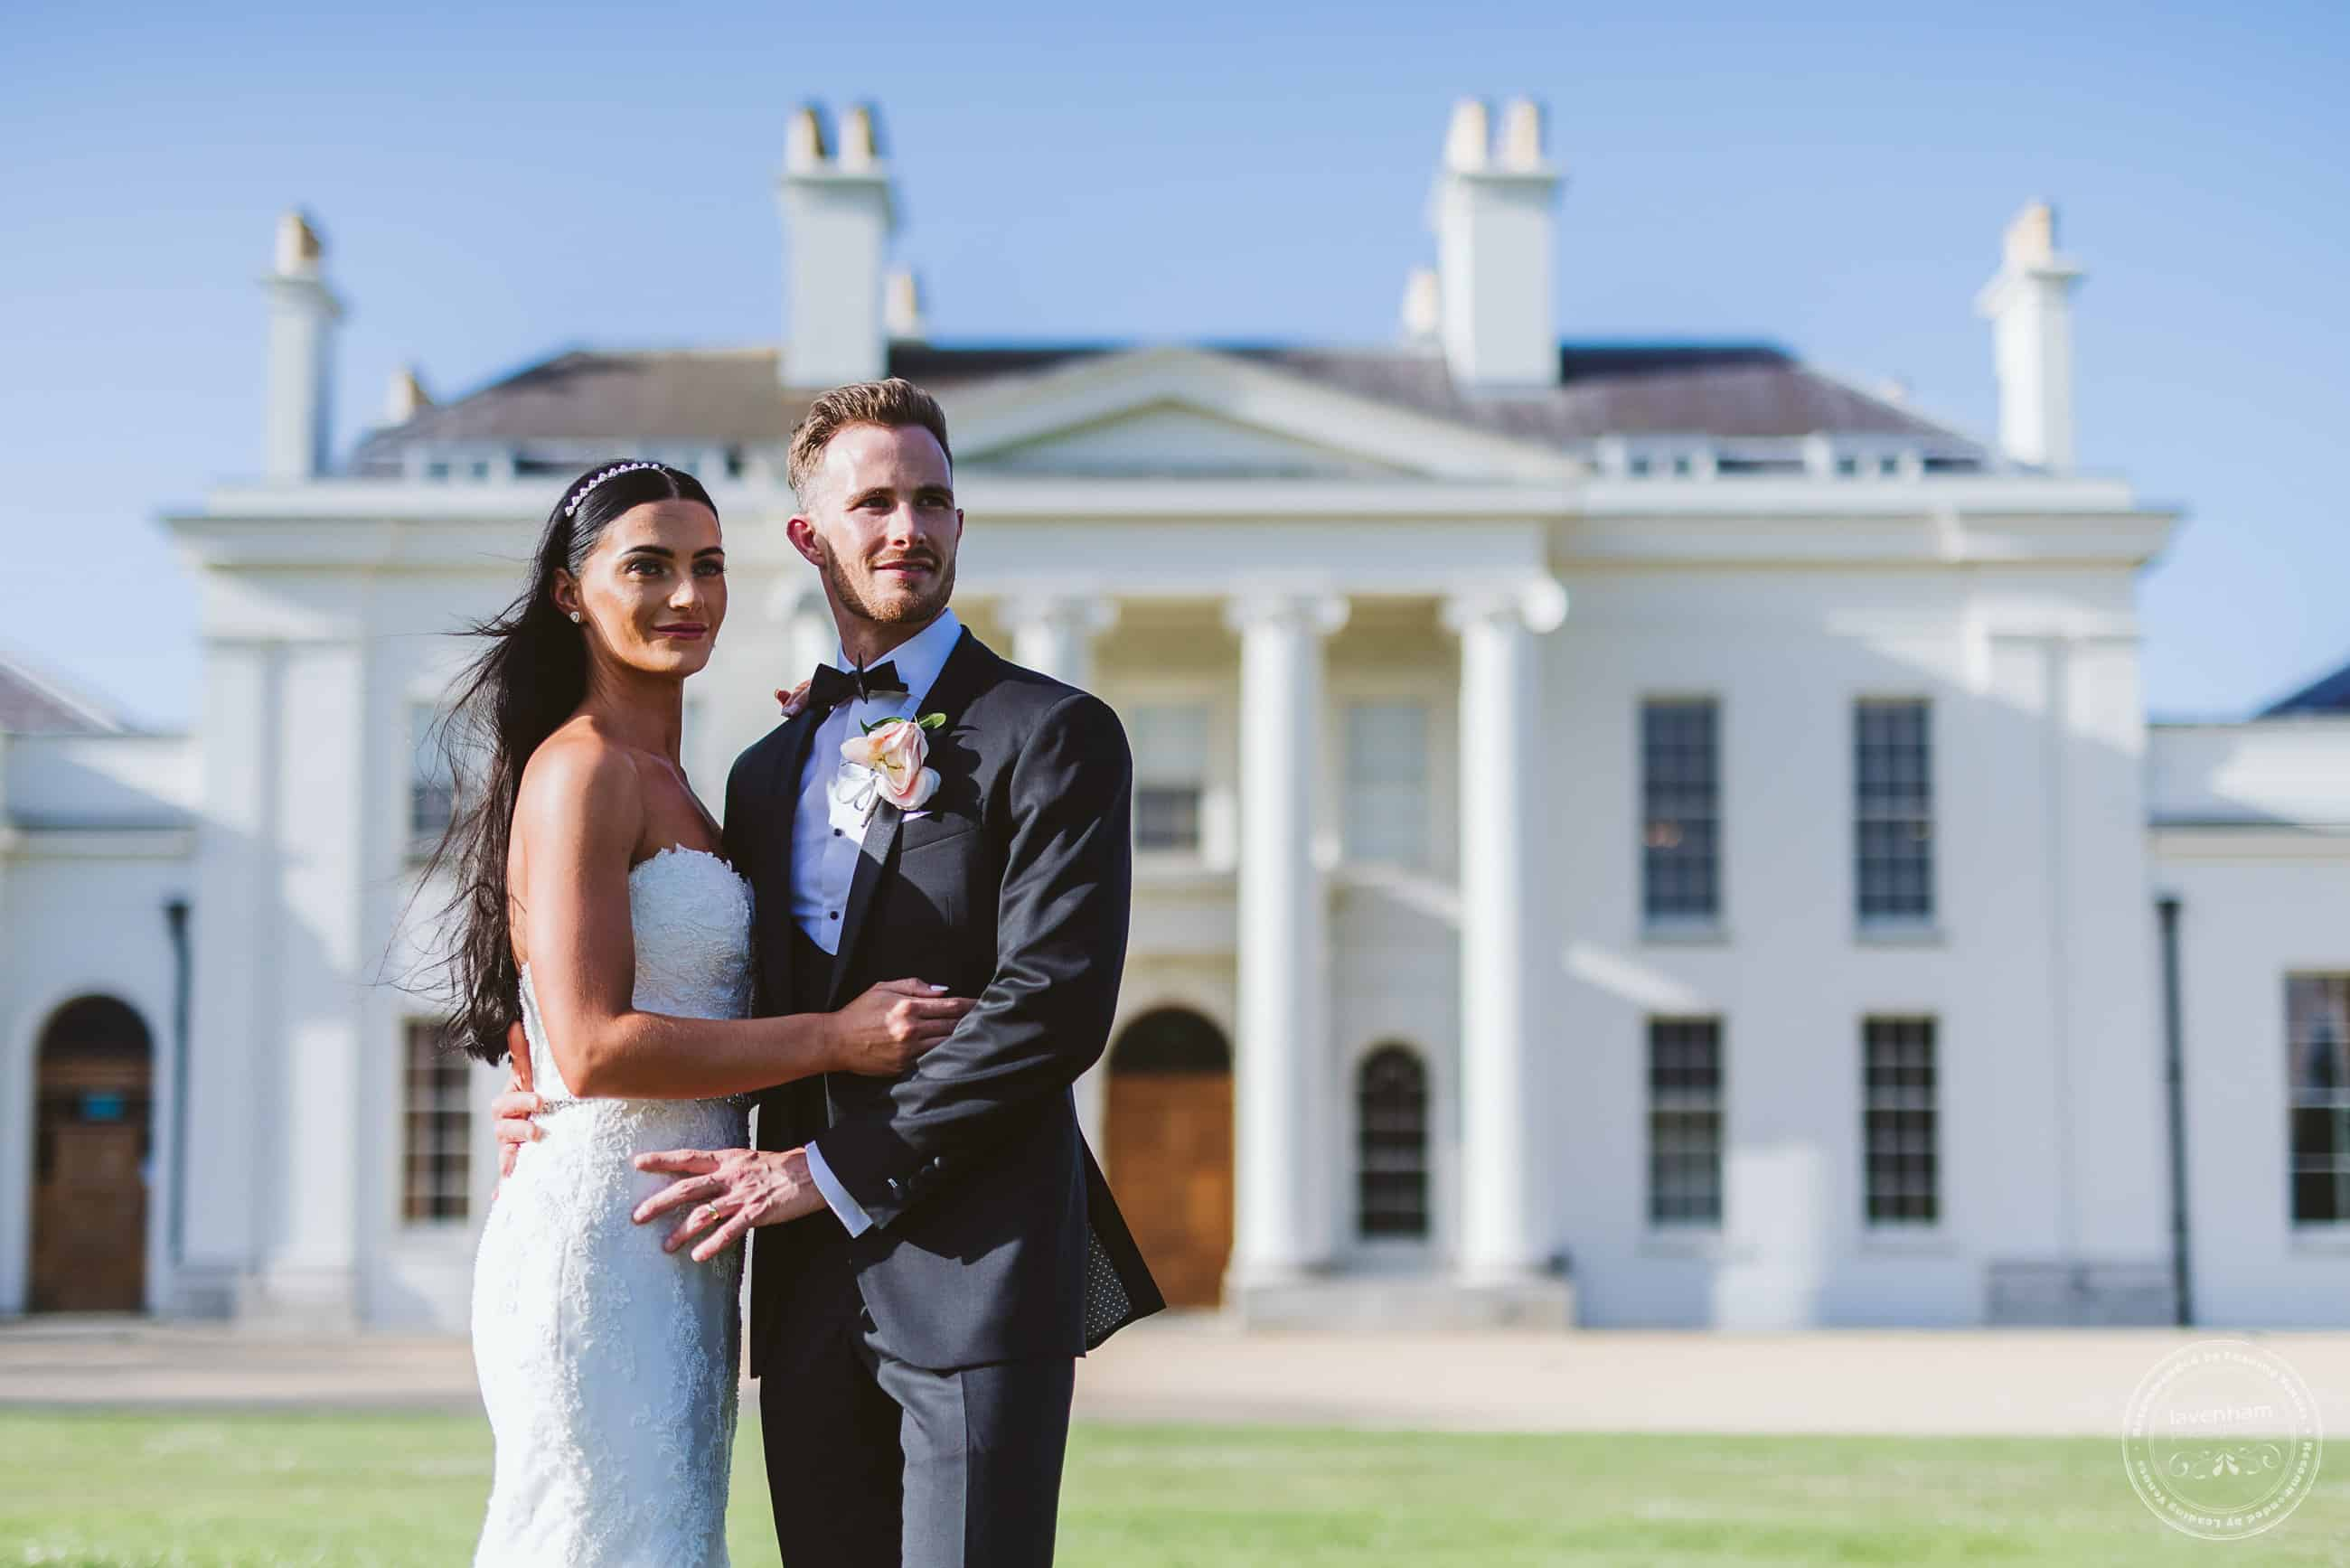 280619 Hylands House Essex Wedding Photography 0172